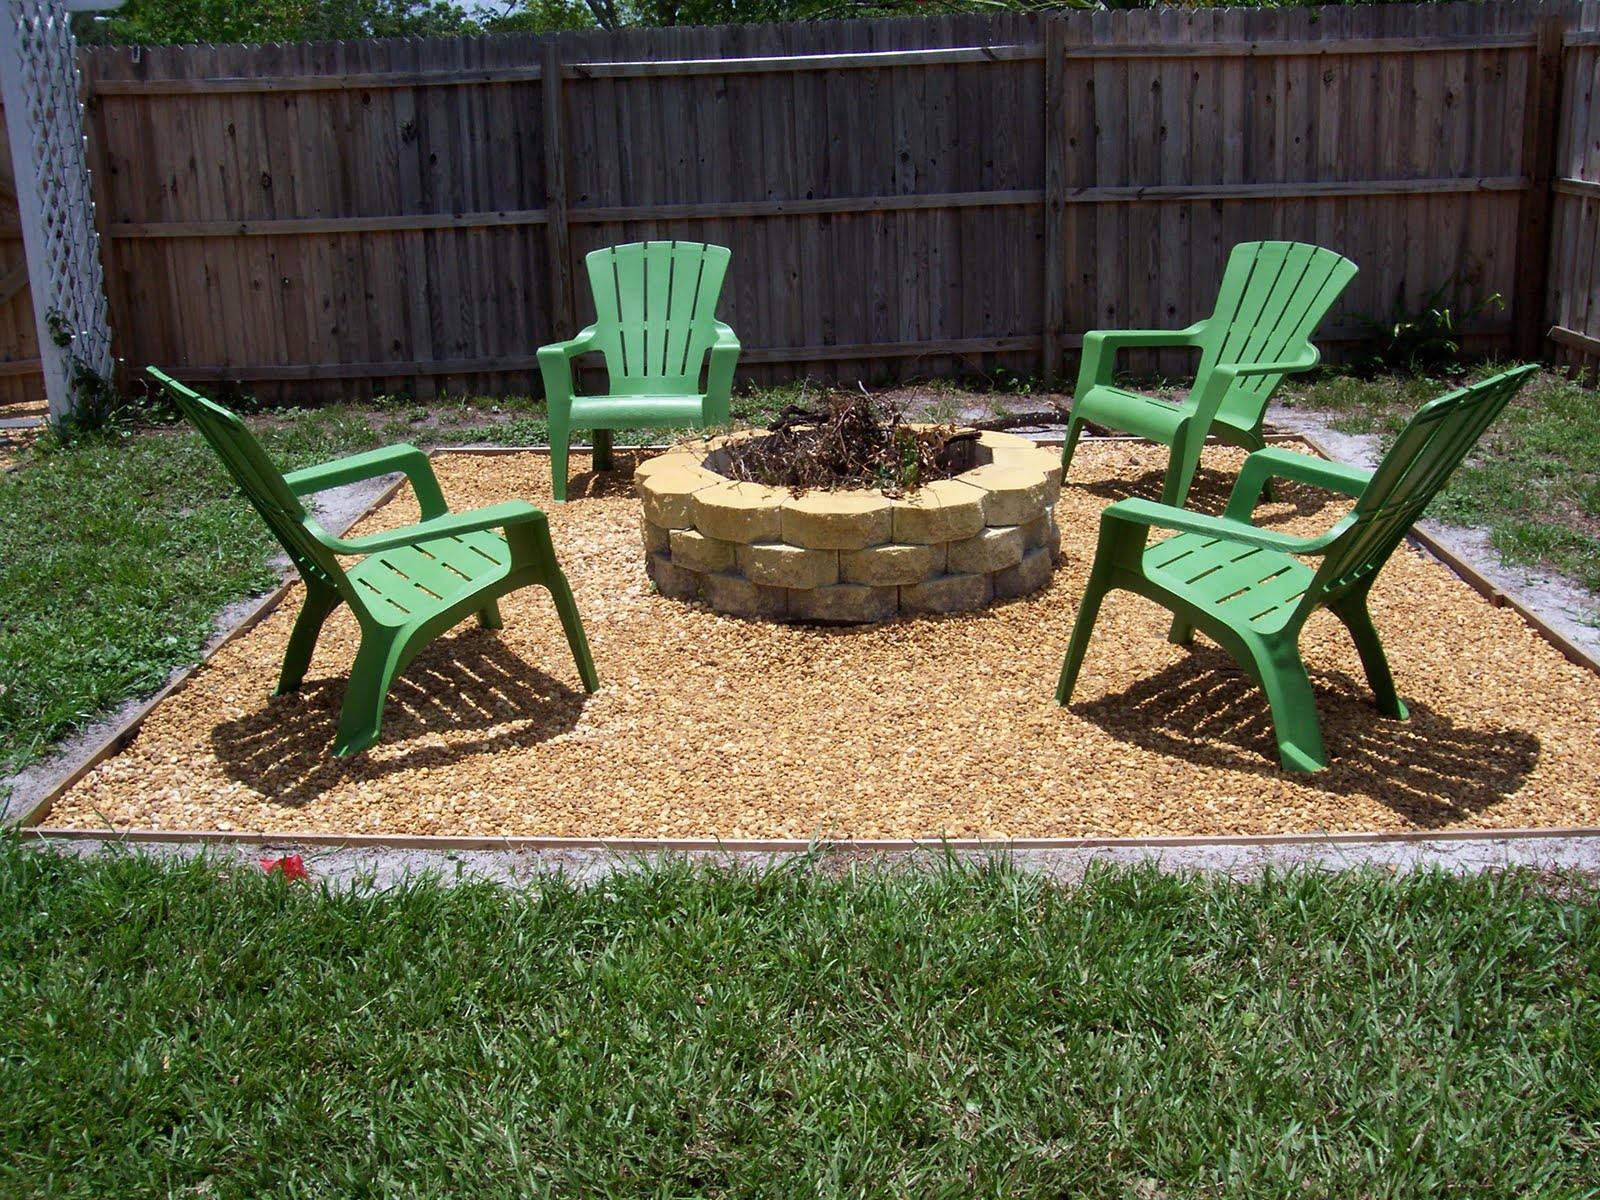 Good Traditional In Ground Fire Pit Design Of Simple Outdoor Living Space With  Green Lawn Chairs Design